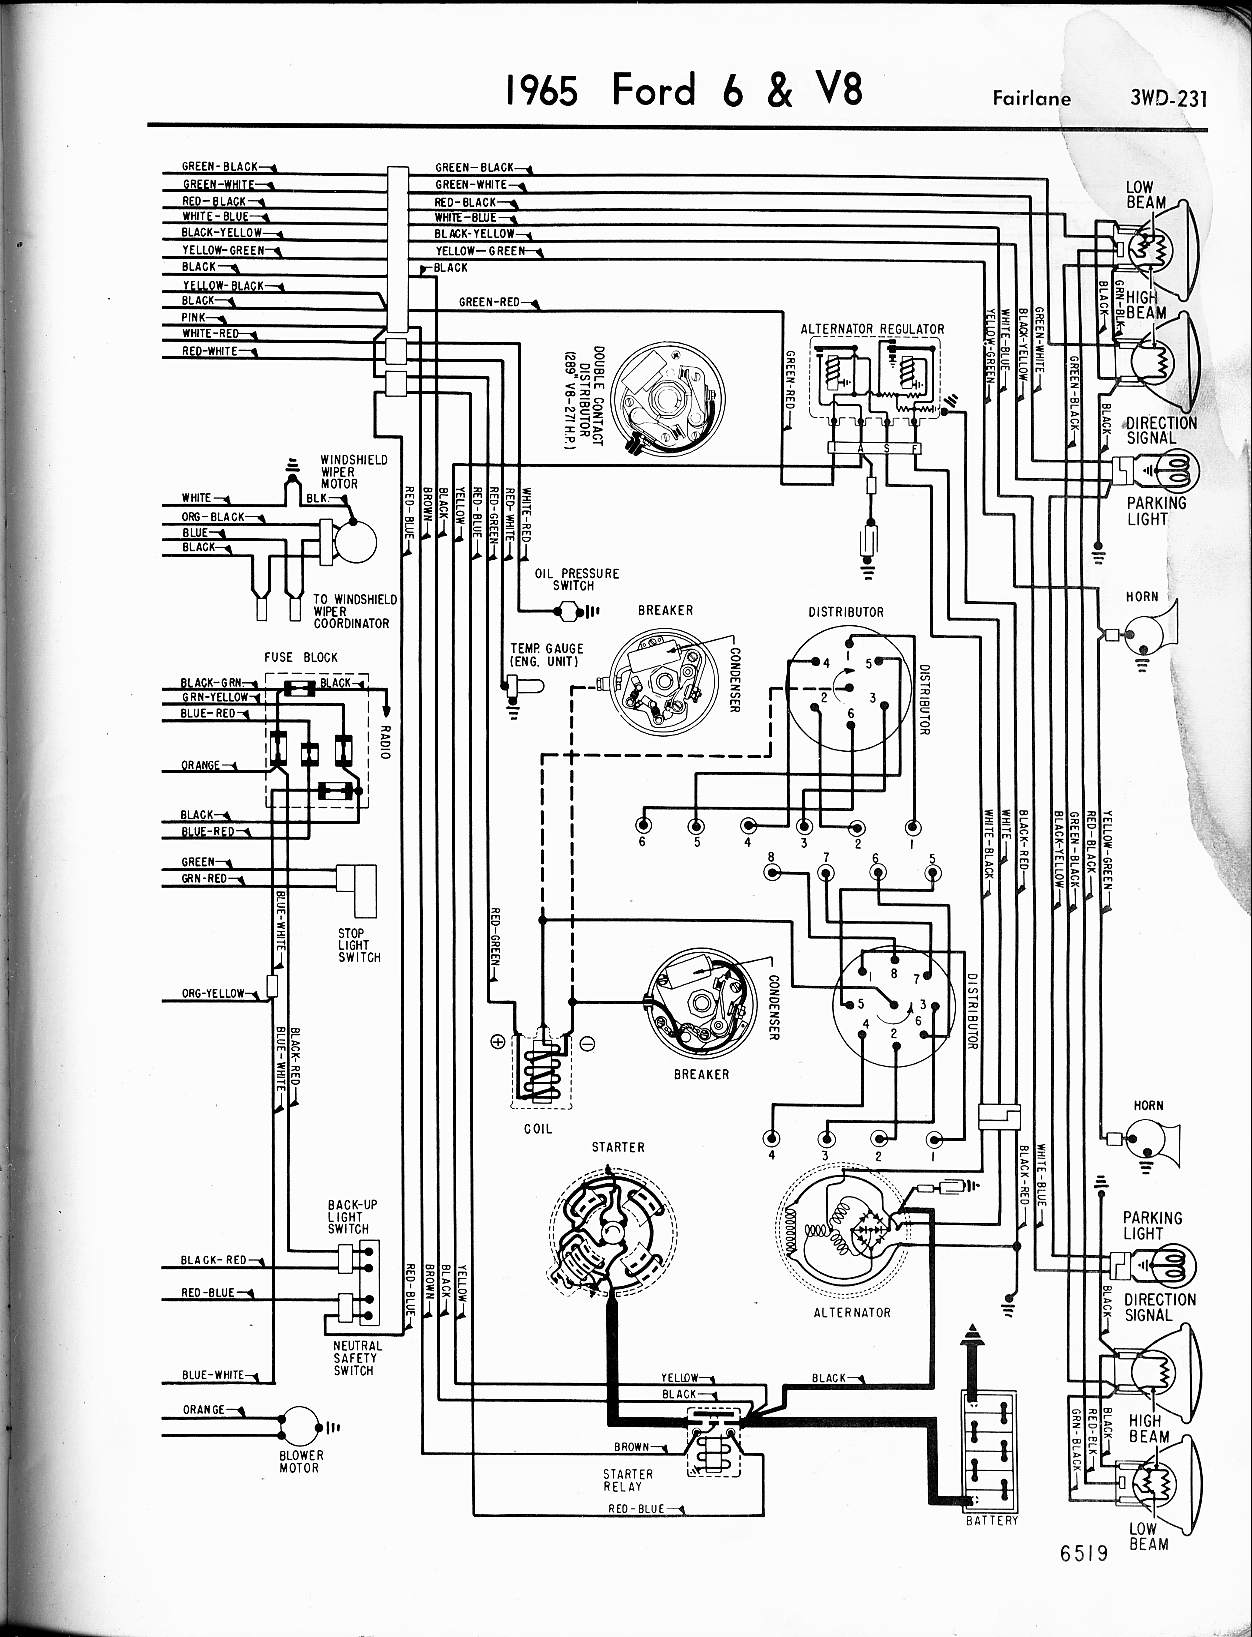 5765 Ford Wiring Diagrams – Exterior Lights Wiring Diagram 1996 Ford